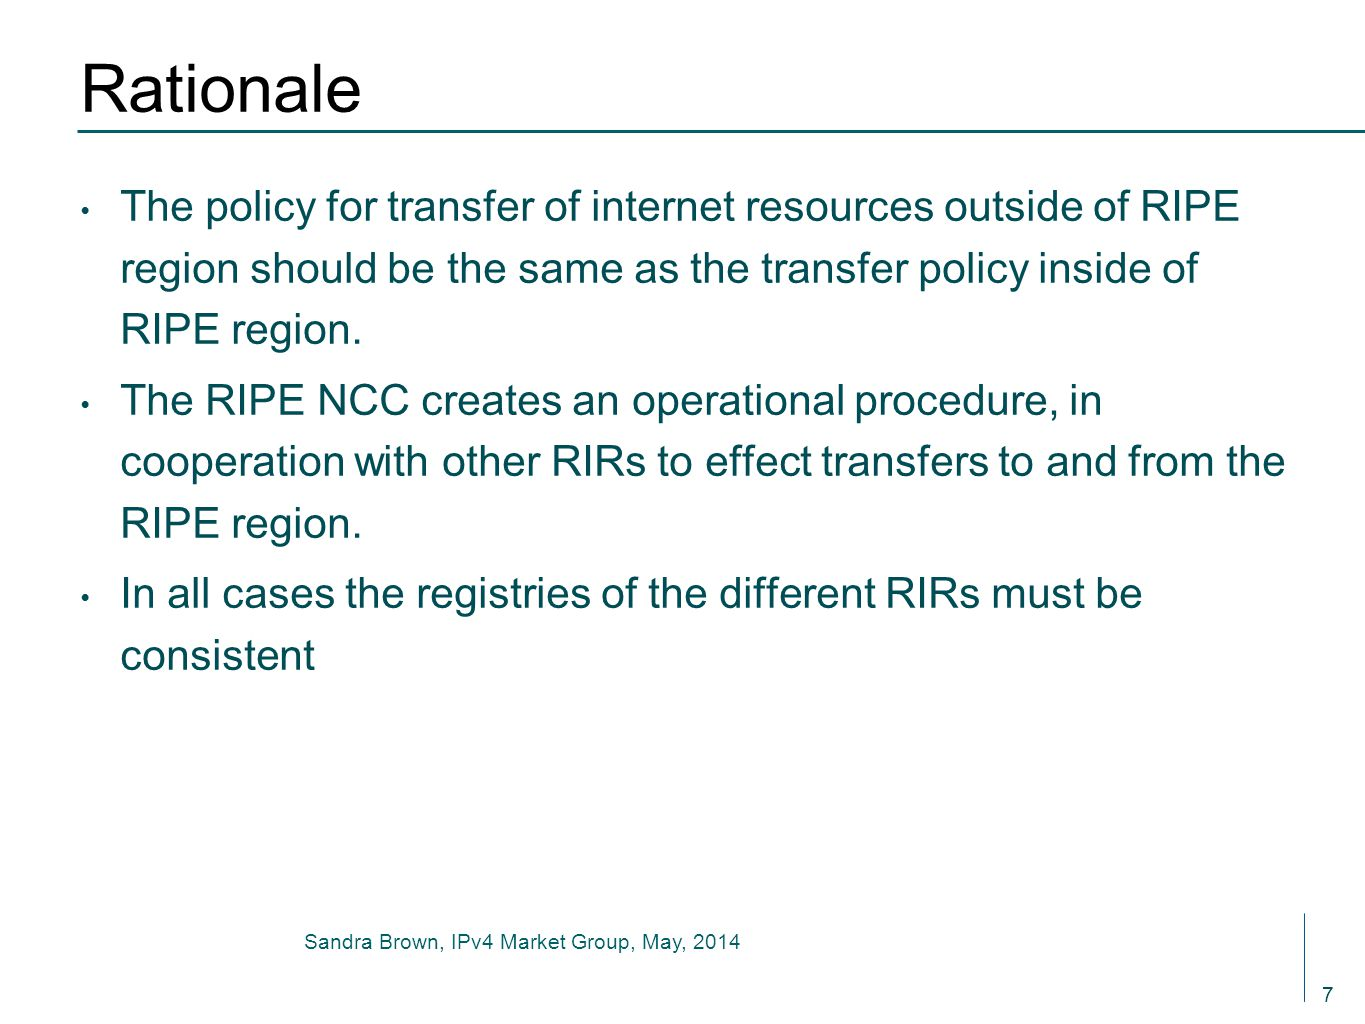 Sandra Brown, IPv4 Market Group, May, 2014 Rationale The policy for transfer of internet resources outside of RIPE region should be the same as the transfer policy inside of RIPE region.